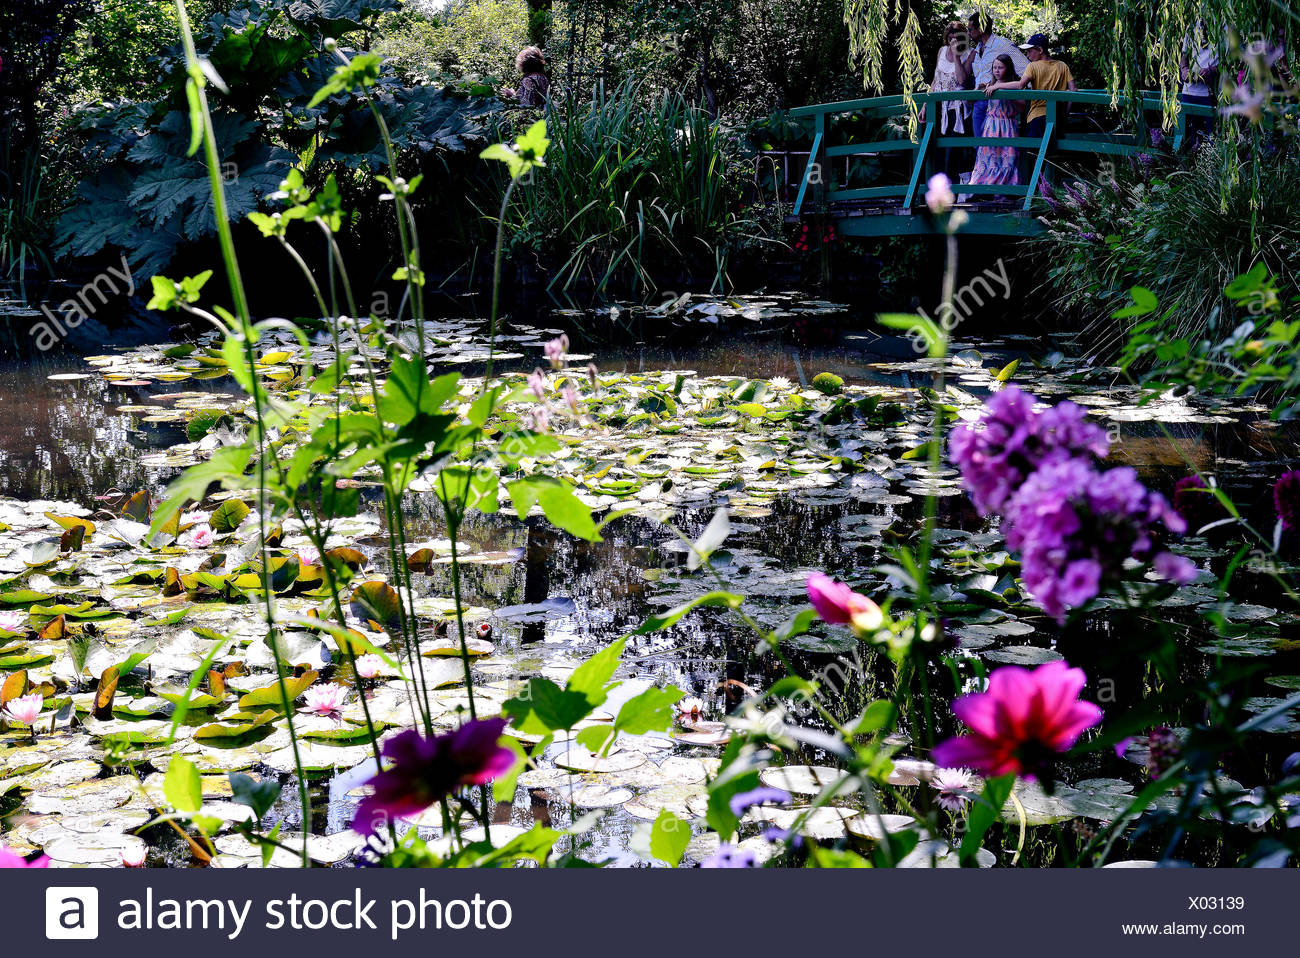 France, Normandy, Eure, Giverny, House And Garden Of The Painter Claude  Monet, Water Lily Pond